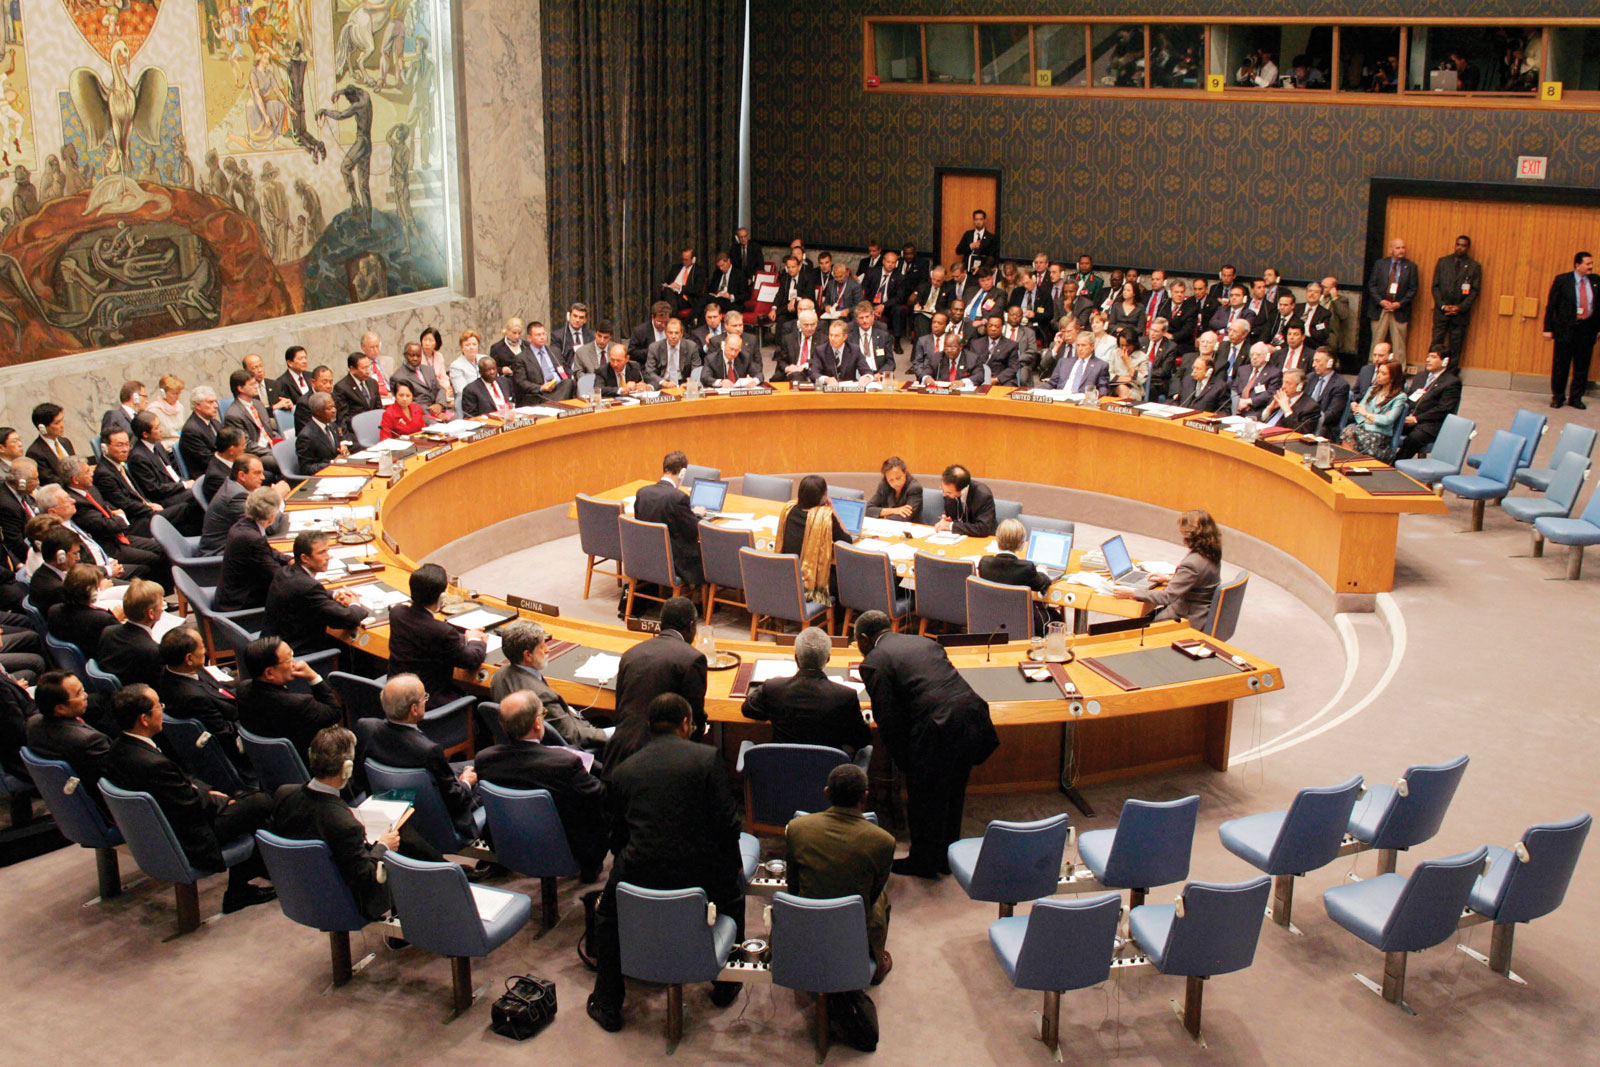 UN Security Council in session. (Photo, centerforunreform.org)